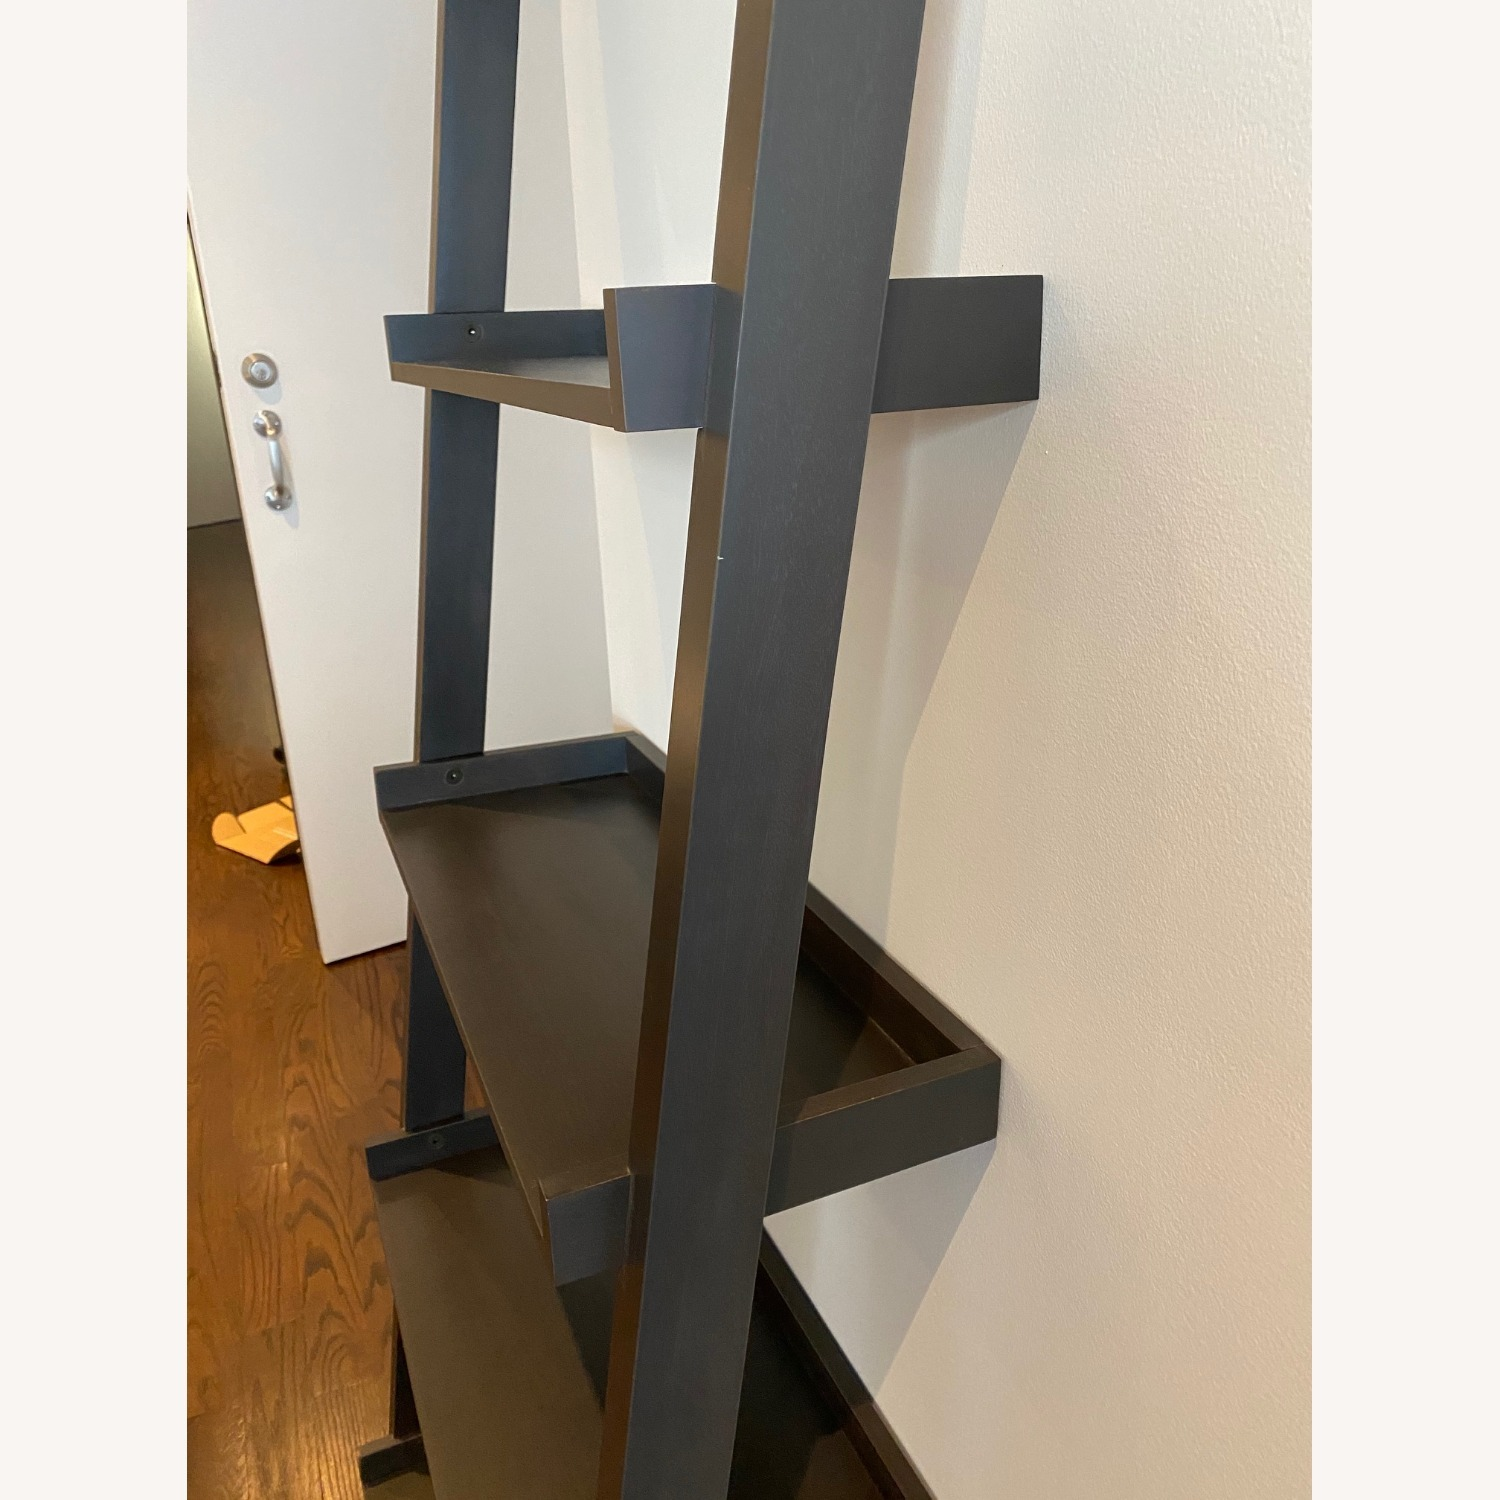 Crate and Barrel Sloane Leaning Bookcase - image-14